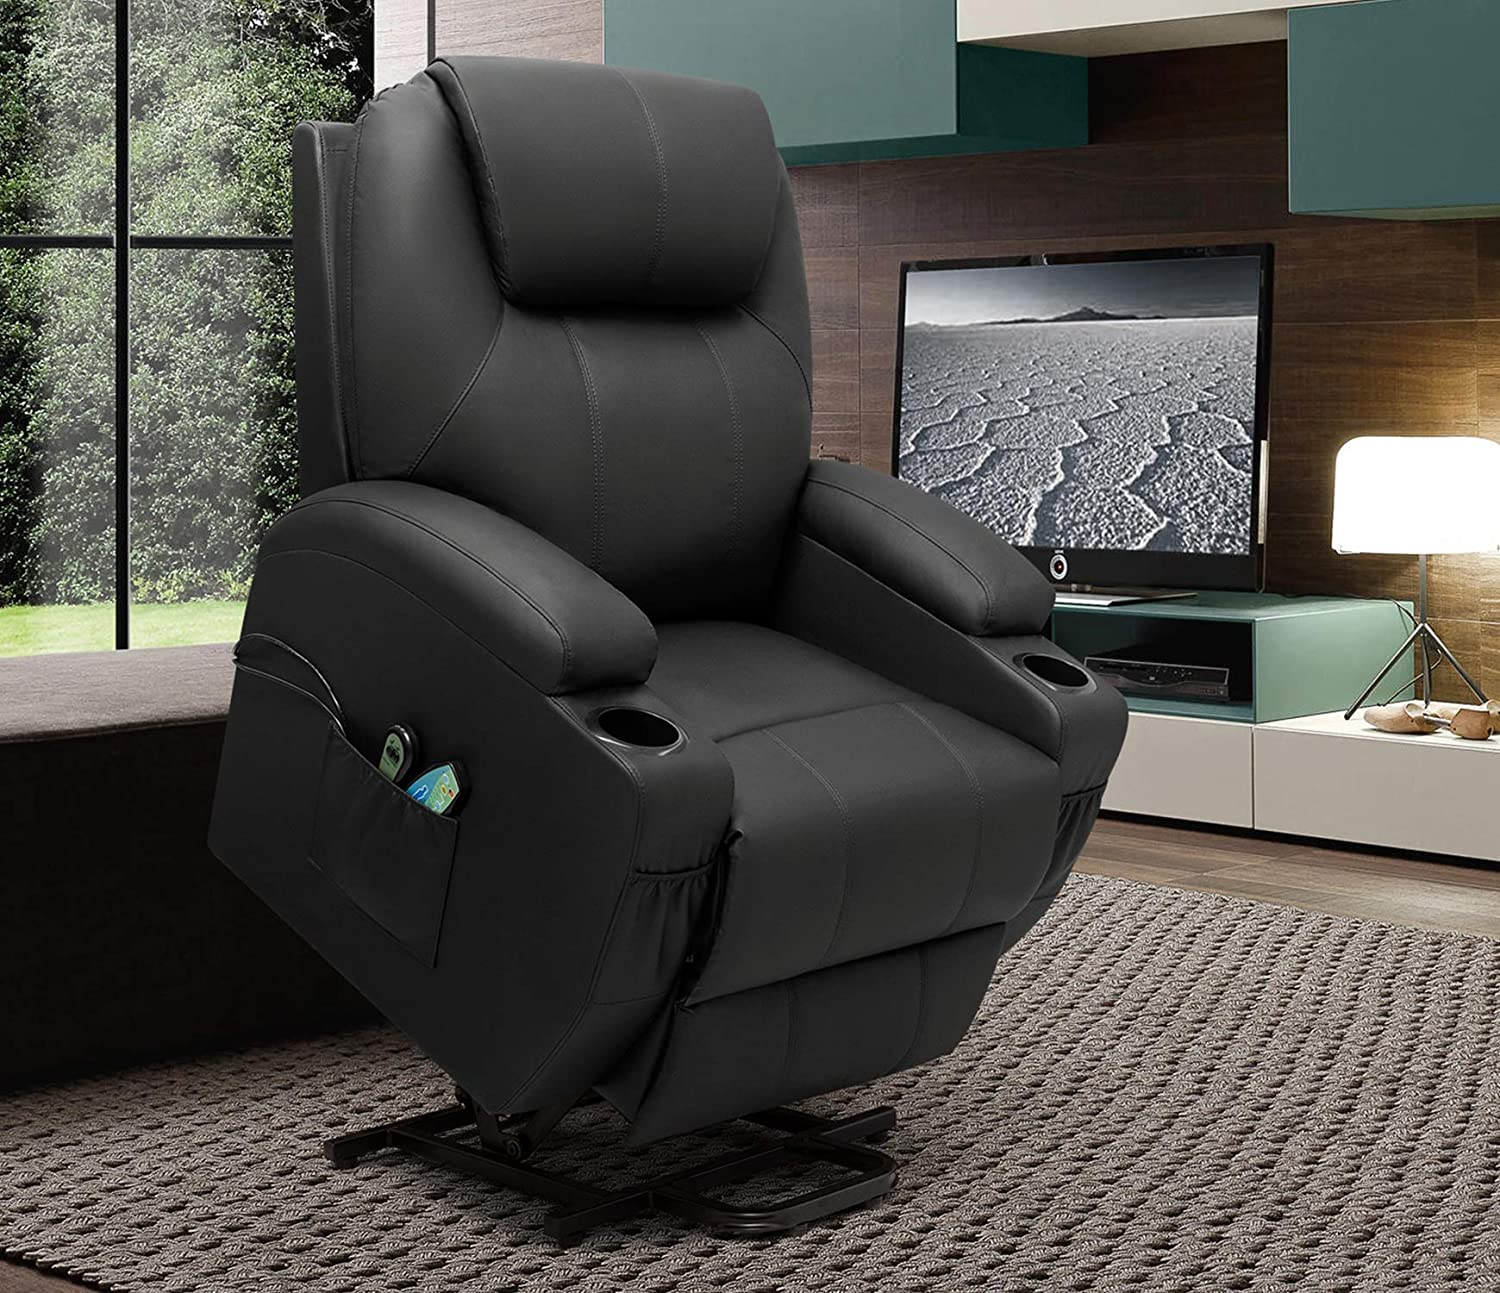 VICTONE Electric Power Lift Recliner Chair PU Leather Sofa Chair for Elderly with Massage and Heat Home Theater Chair with Side Pockets and Cup Holders (Black)